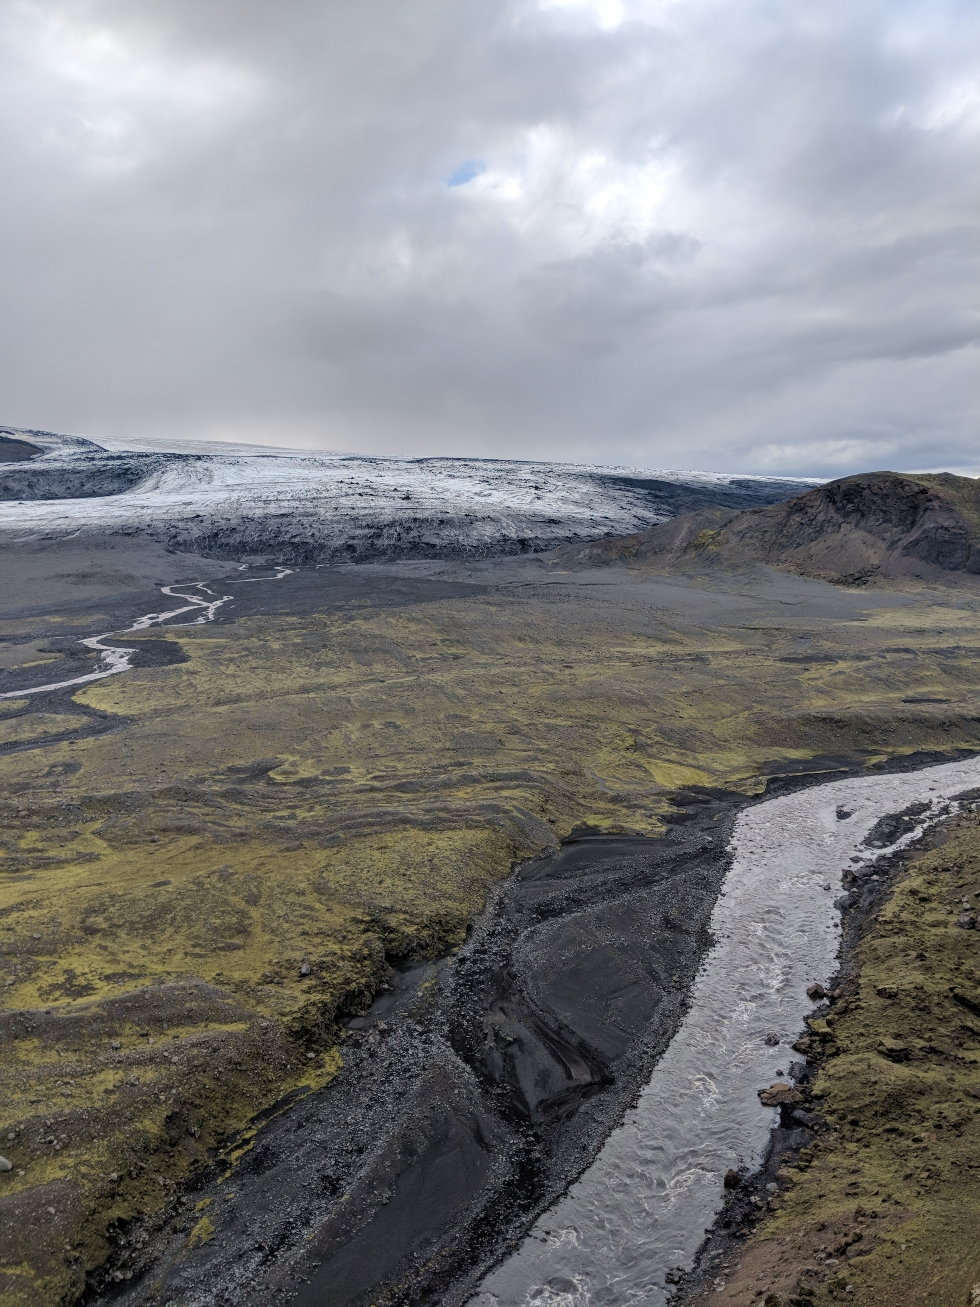 This is a picture of Öldusfellsjökull, an outlet glacier in southern Iceland. In front of the glacier a variety of glacial features can be seen: the two rivers in the image are fed by glacial meltwater (these create a variety of channelized sandy features – the black sediments on the bottom centre of the image), in the middle of the photo a variety of frontal and push moraines can also been seen (these were formed along ancient ice margins and tell us how much the glacier has retreated).